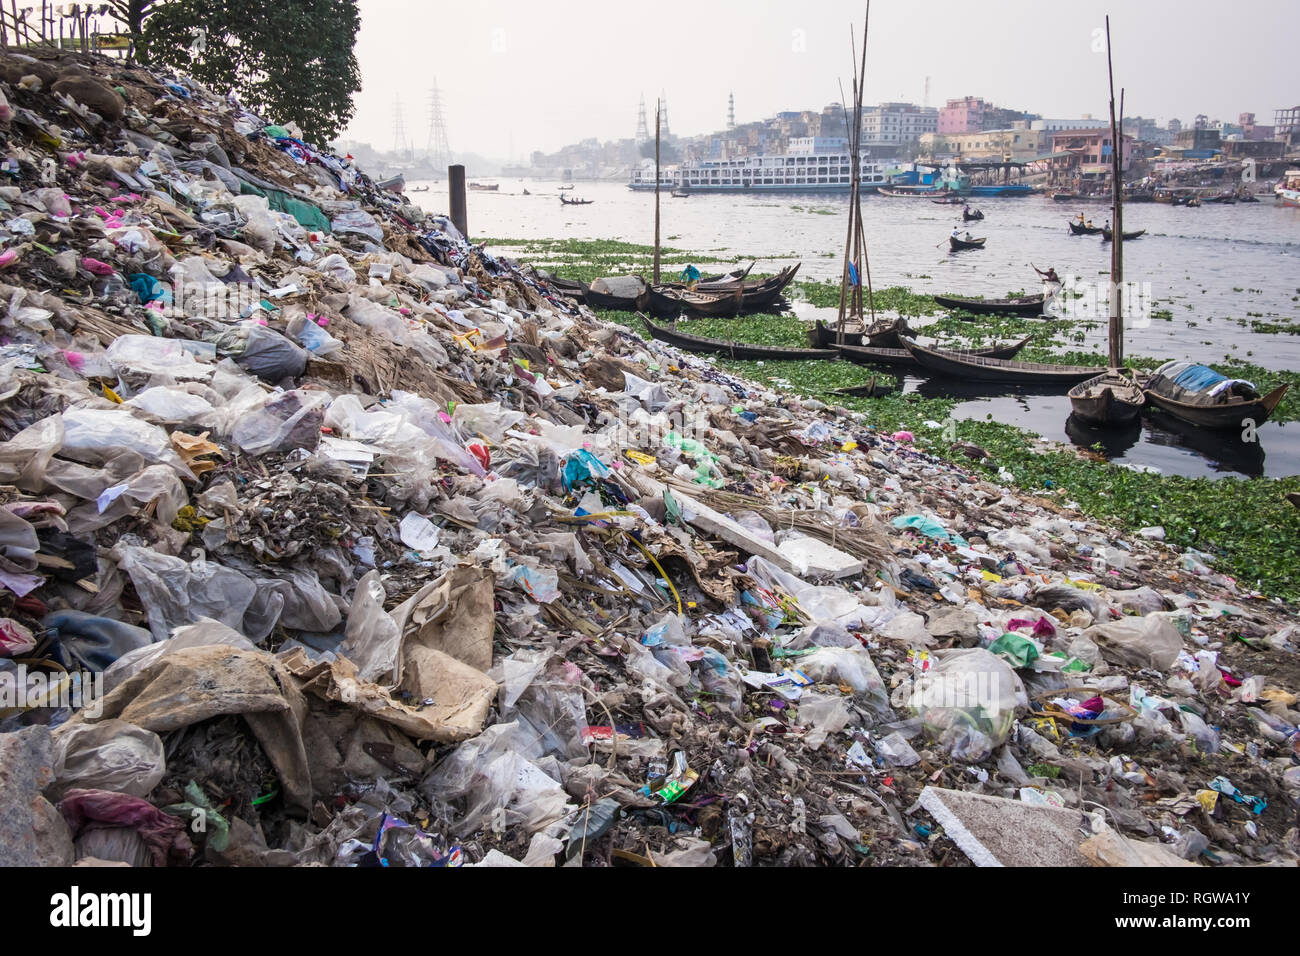 garbage and plastic pollution on the river bank in Dhaka, Bangladesh, riverside and boats in the background - Stock Image